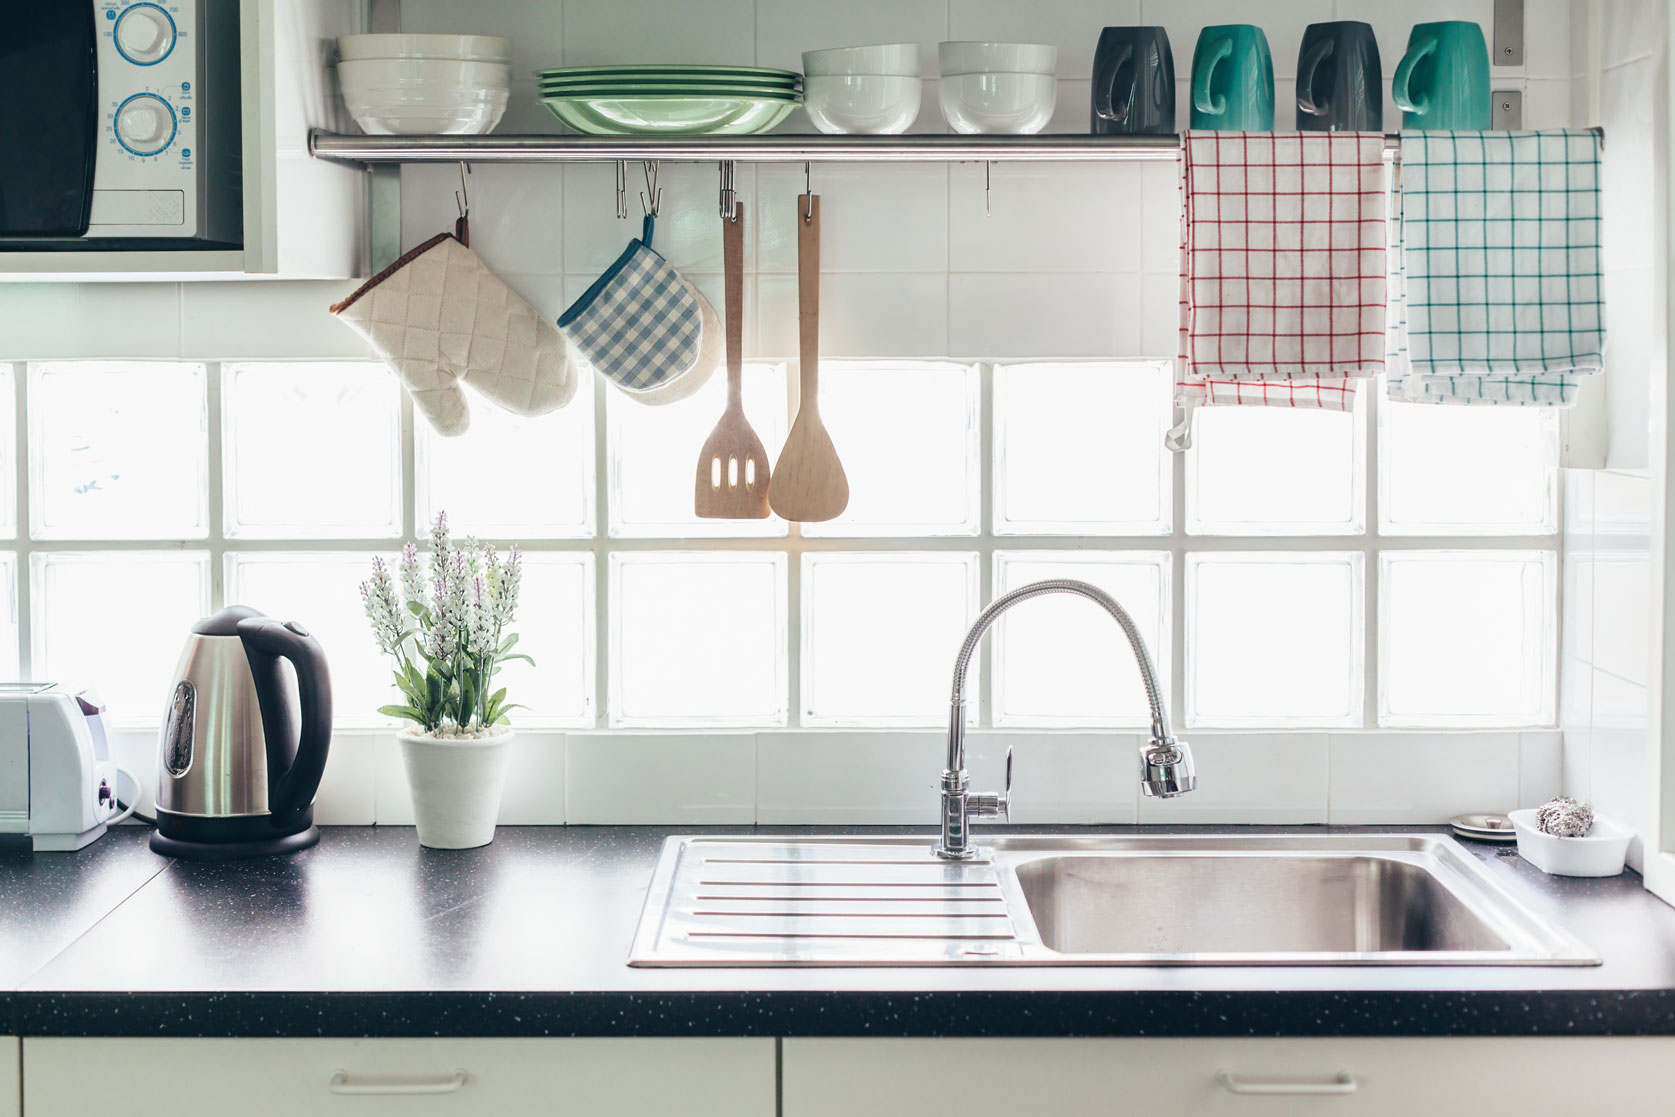 5 Tips on How to Keep Your Kitchen Looking Sharp